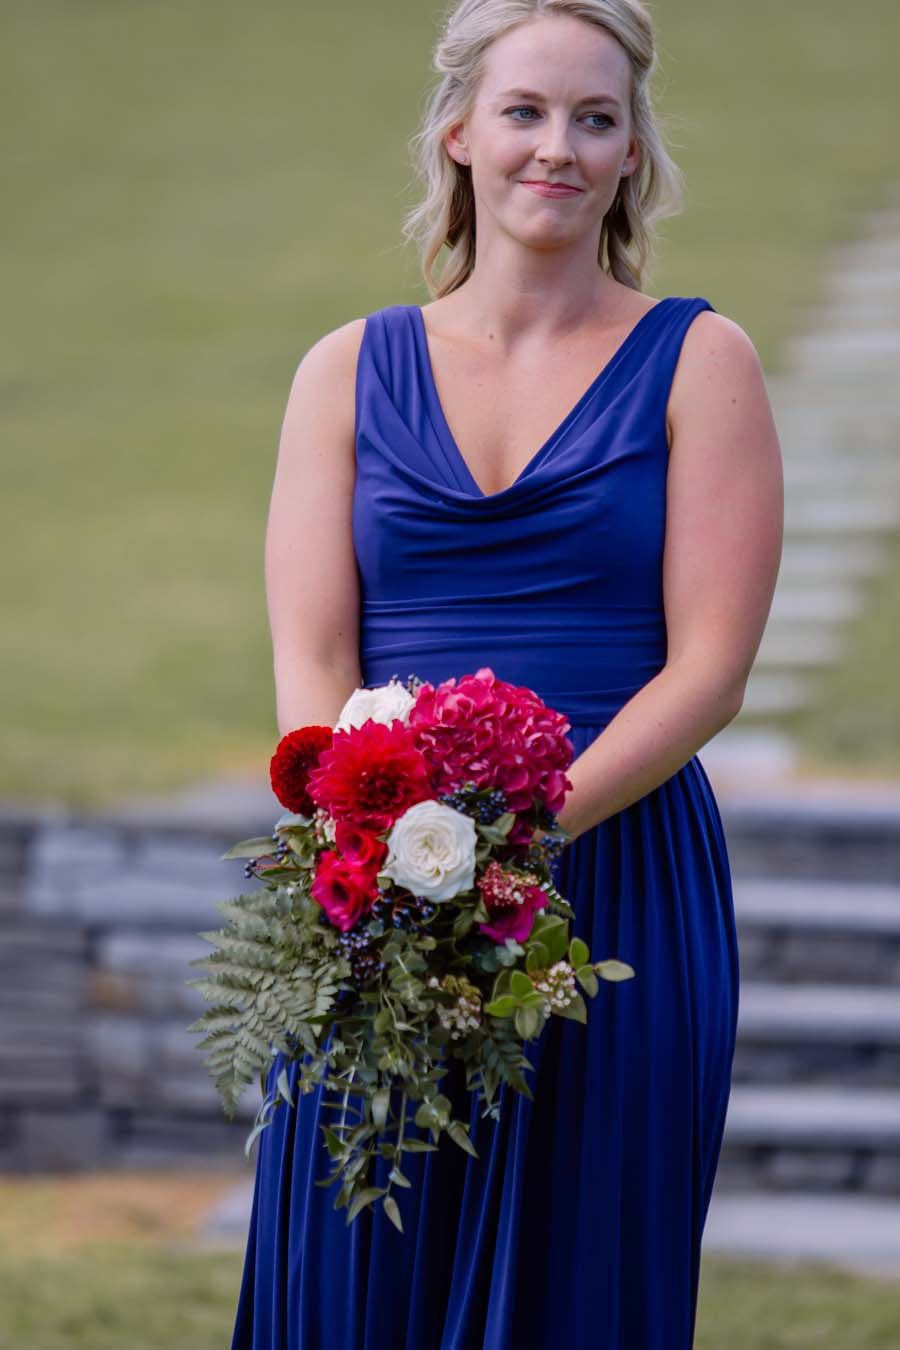 nz_wedding_photographer_castaways_waiuku-988